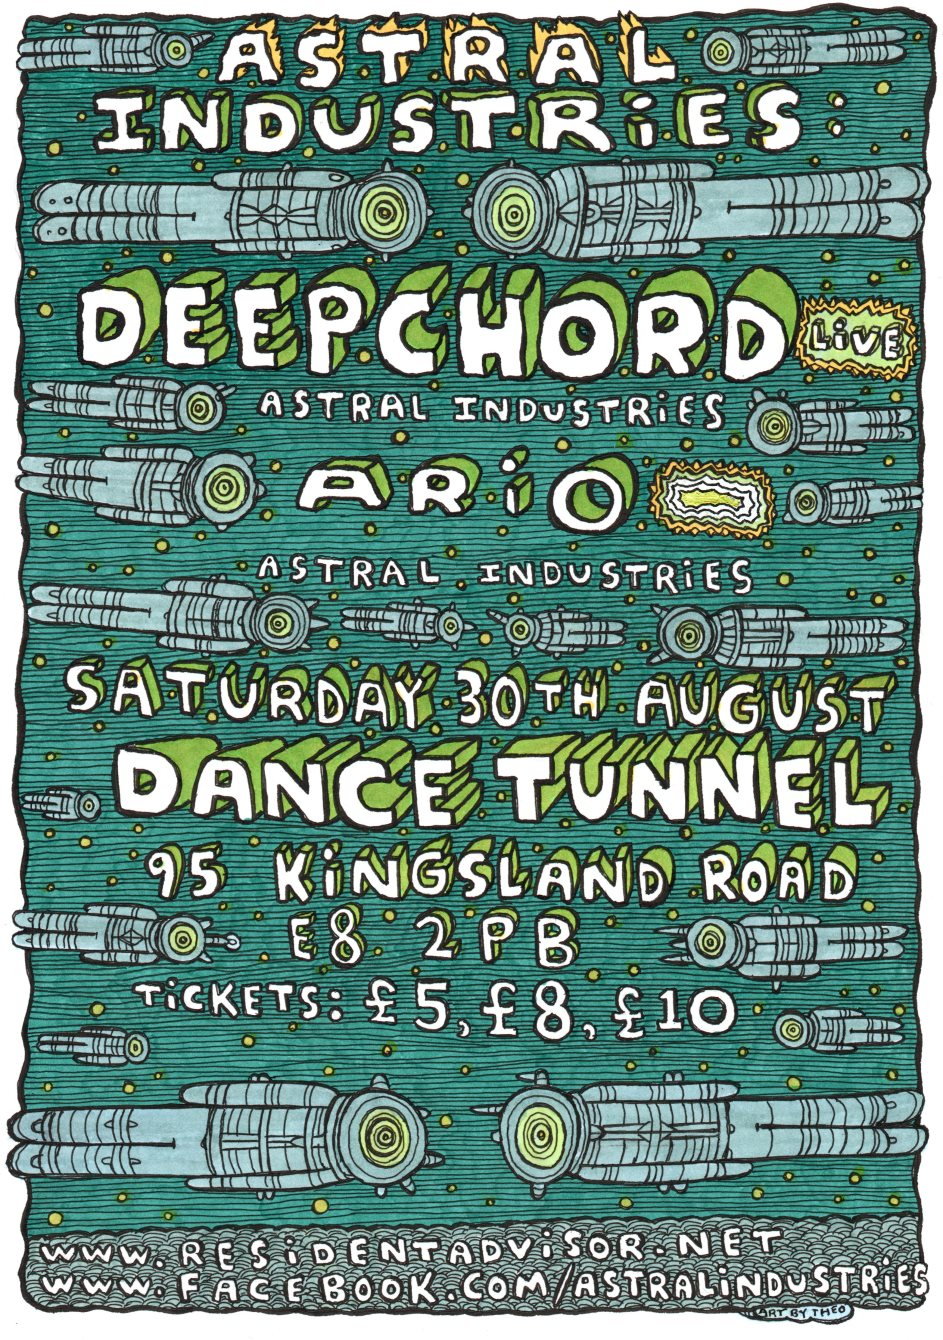 Astral Industries with Deepchord - Flyer front